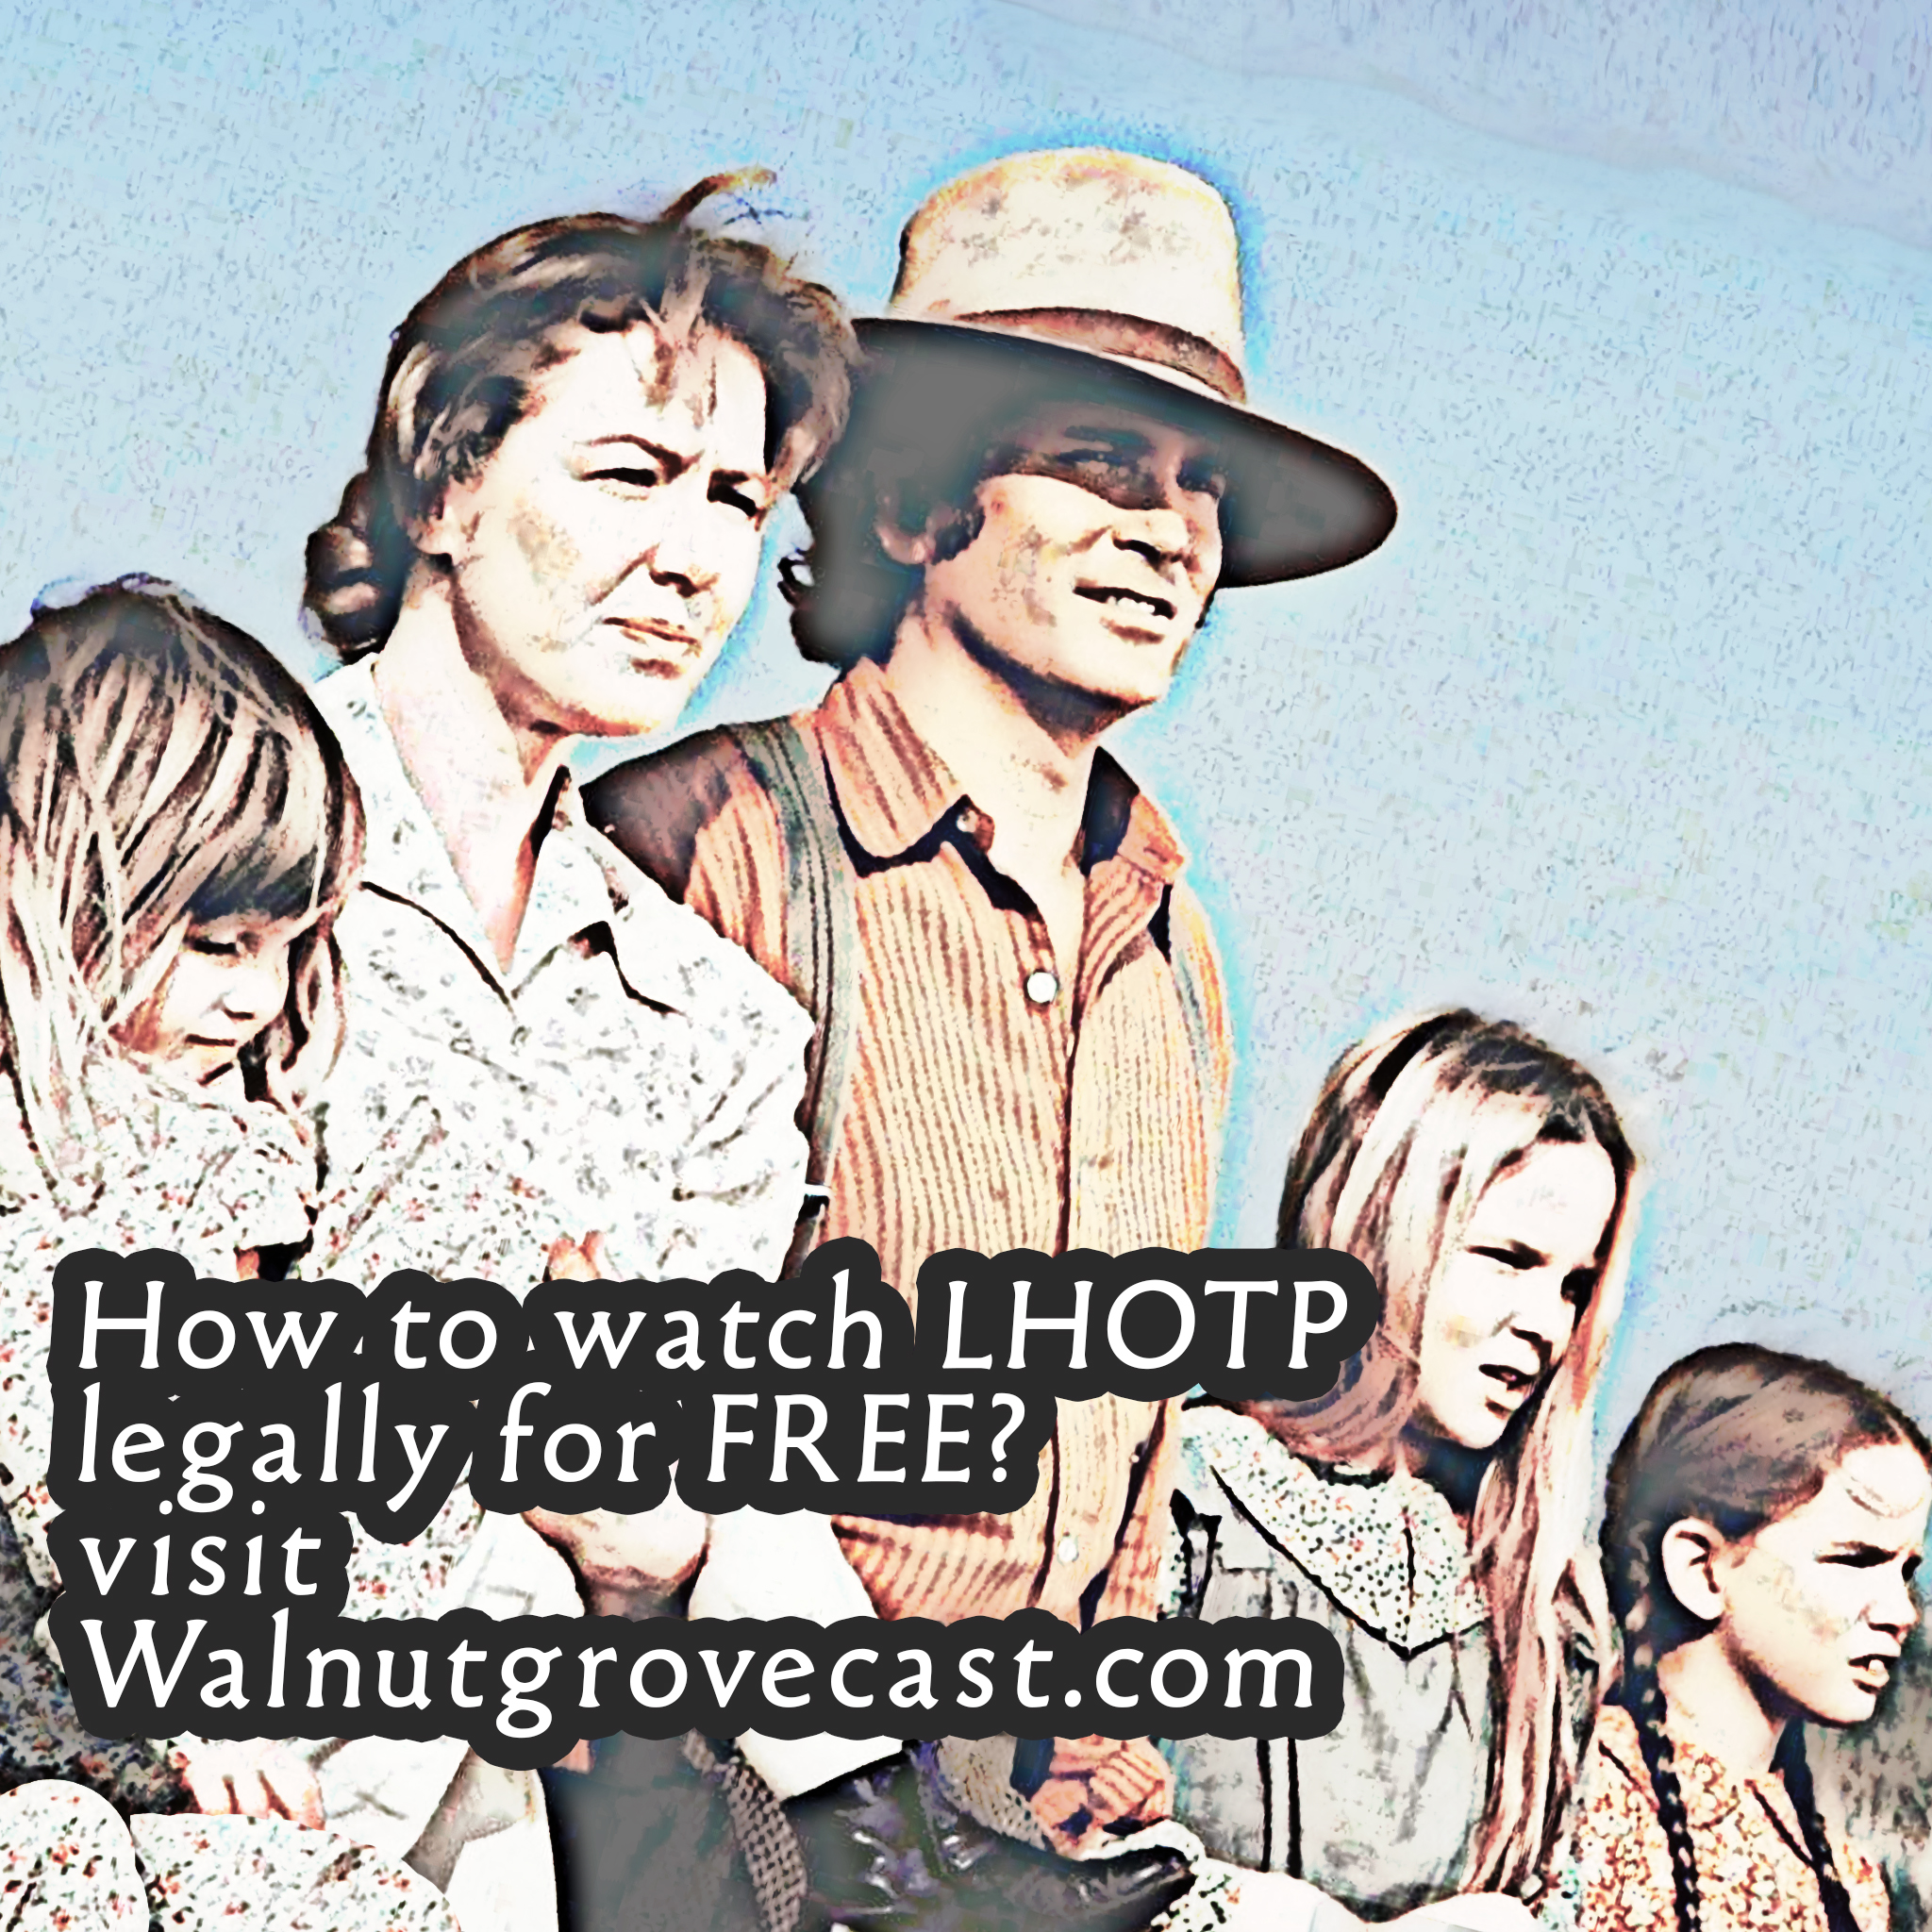 How can I watch Little House on the Prairie for FREE? Locast & CoziTV